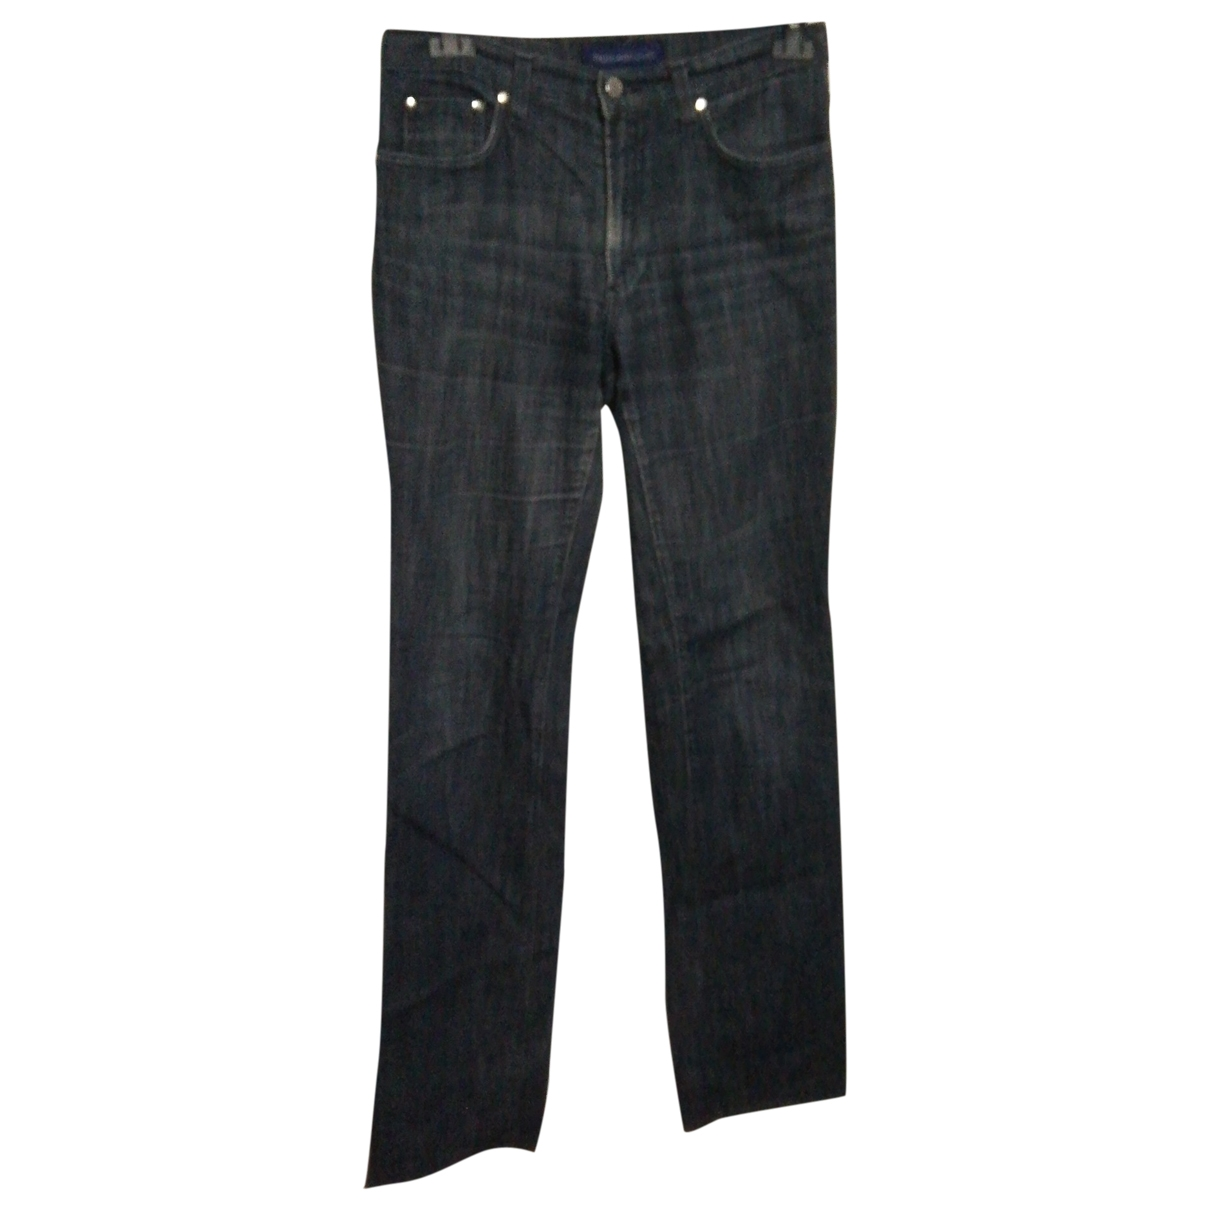 Trussardi Jeans \N Blue Cotton - elasthane Jeans for Women 28 US